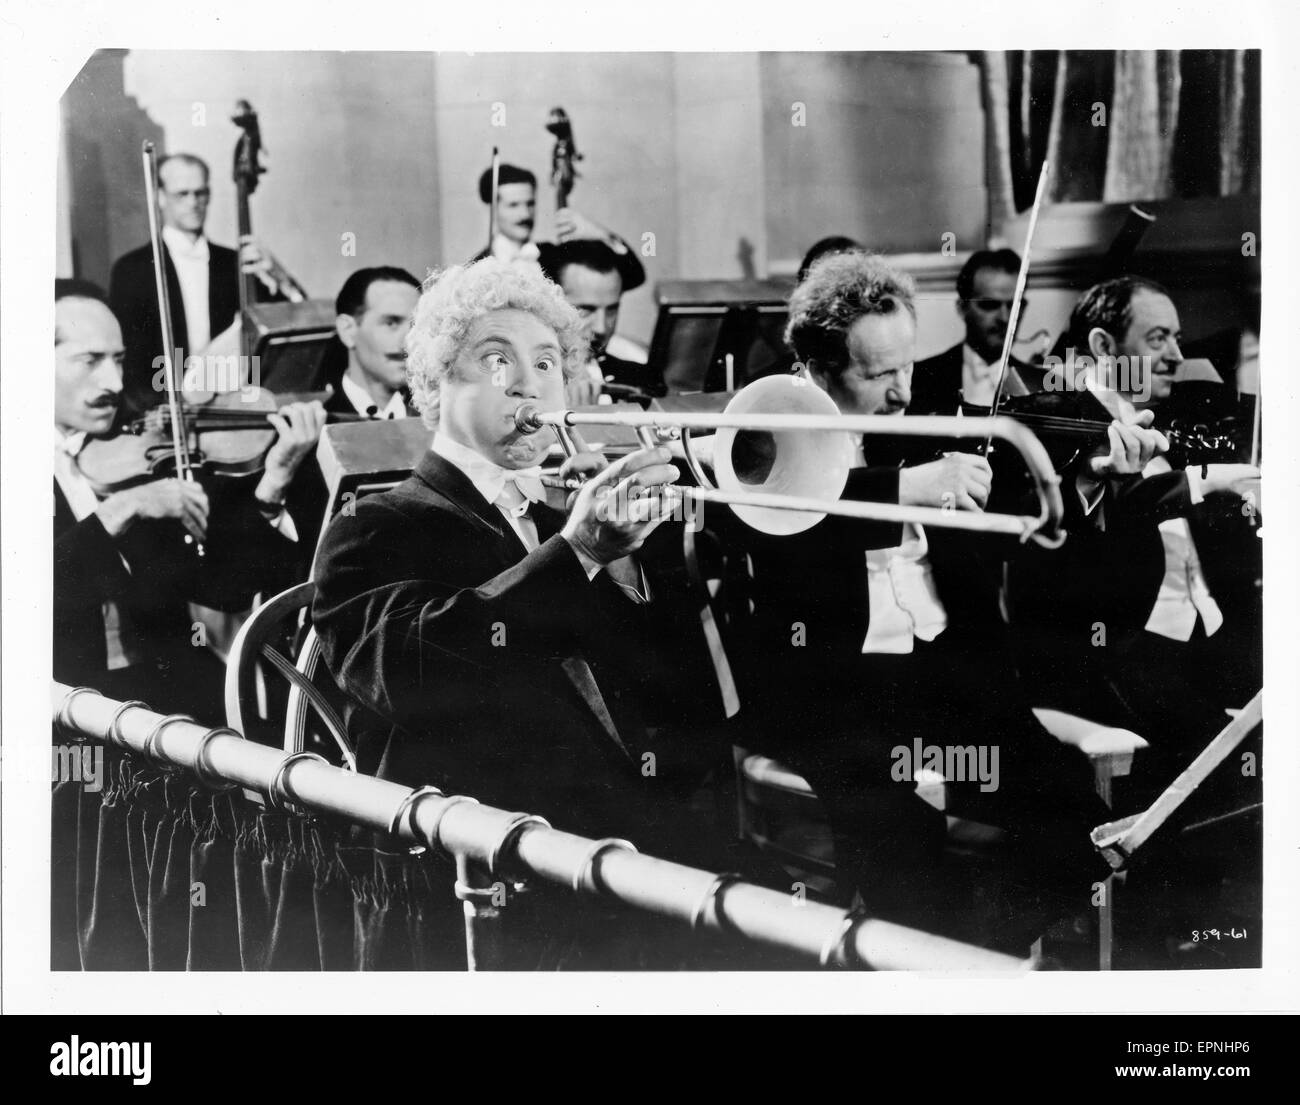 Harpo Marx playing the trombone in a scene from the 1935 film 'A NIght at the OPera' - Stock Image